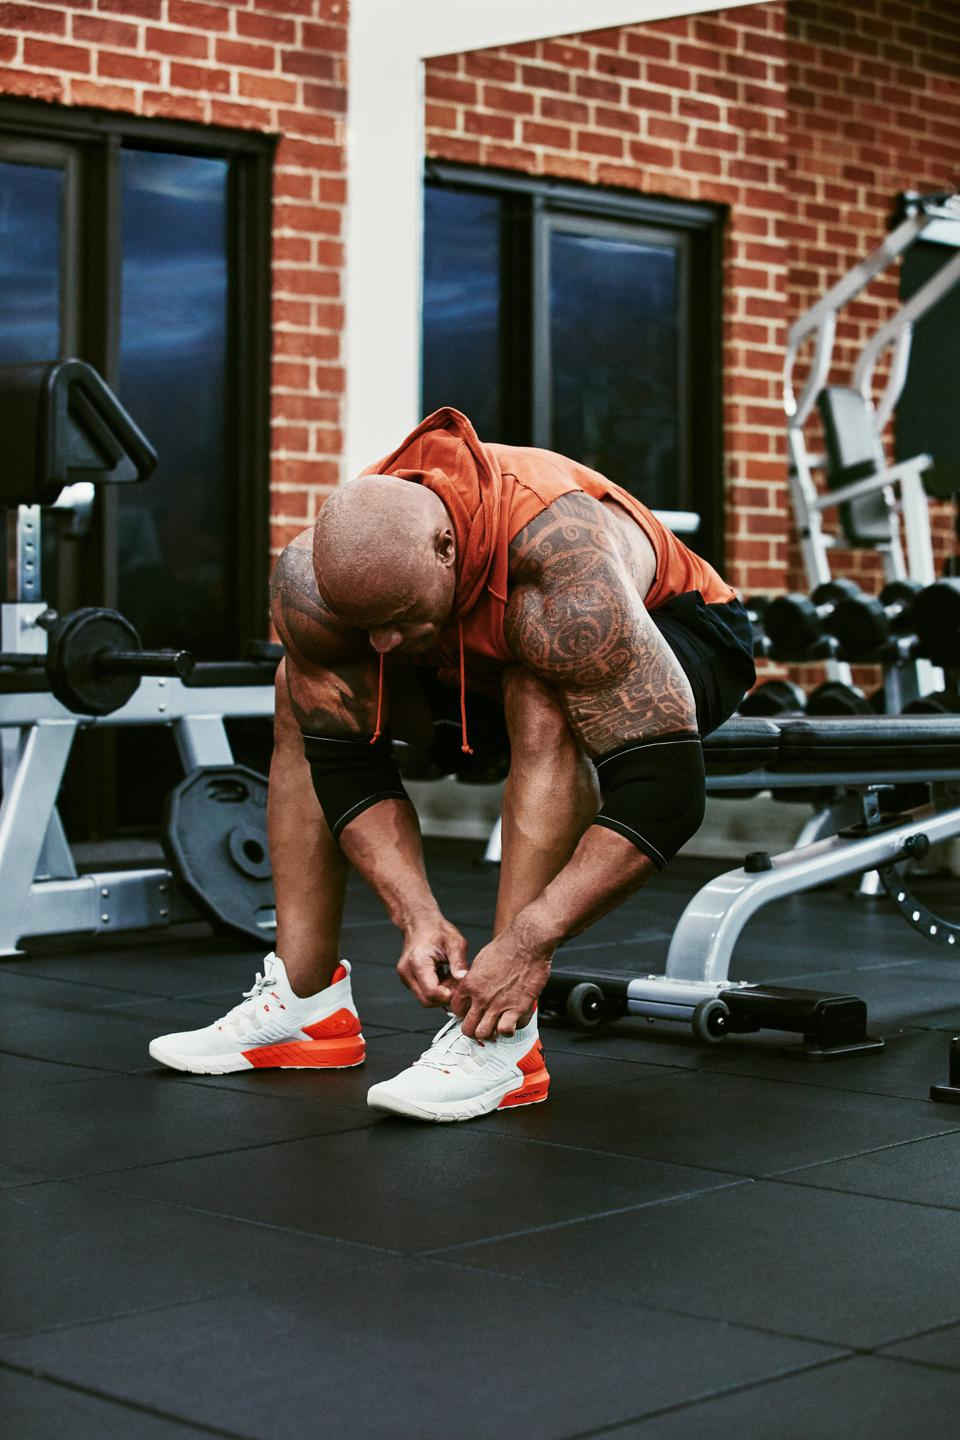 Dwayne ″The Rock″ Johnson's Project Rock collaboration with Under Armour